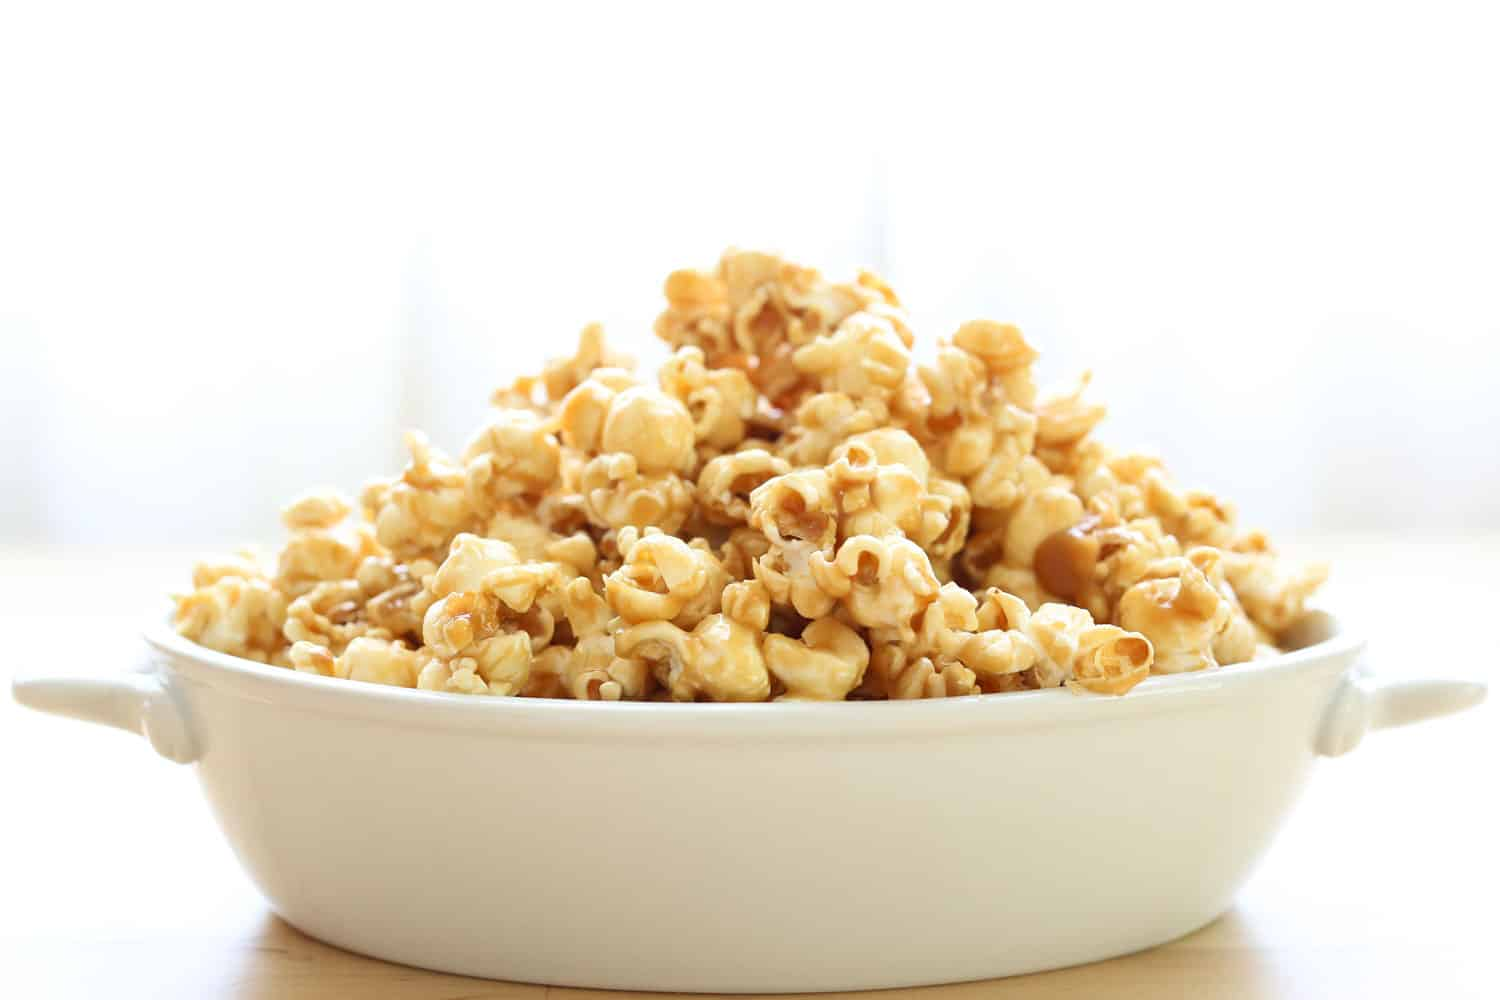 How To Make Caramel Corn At Home